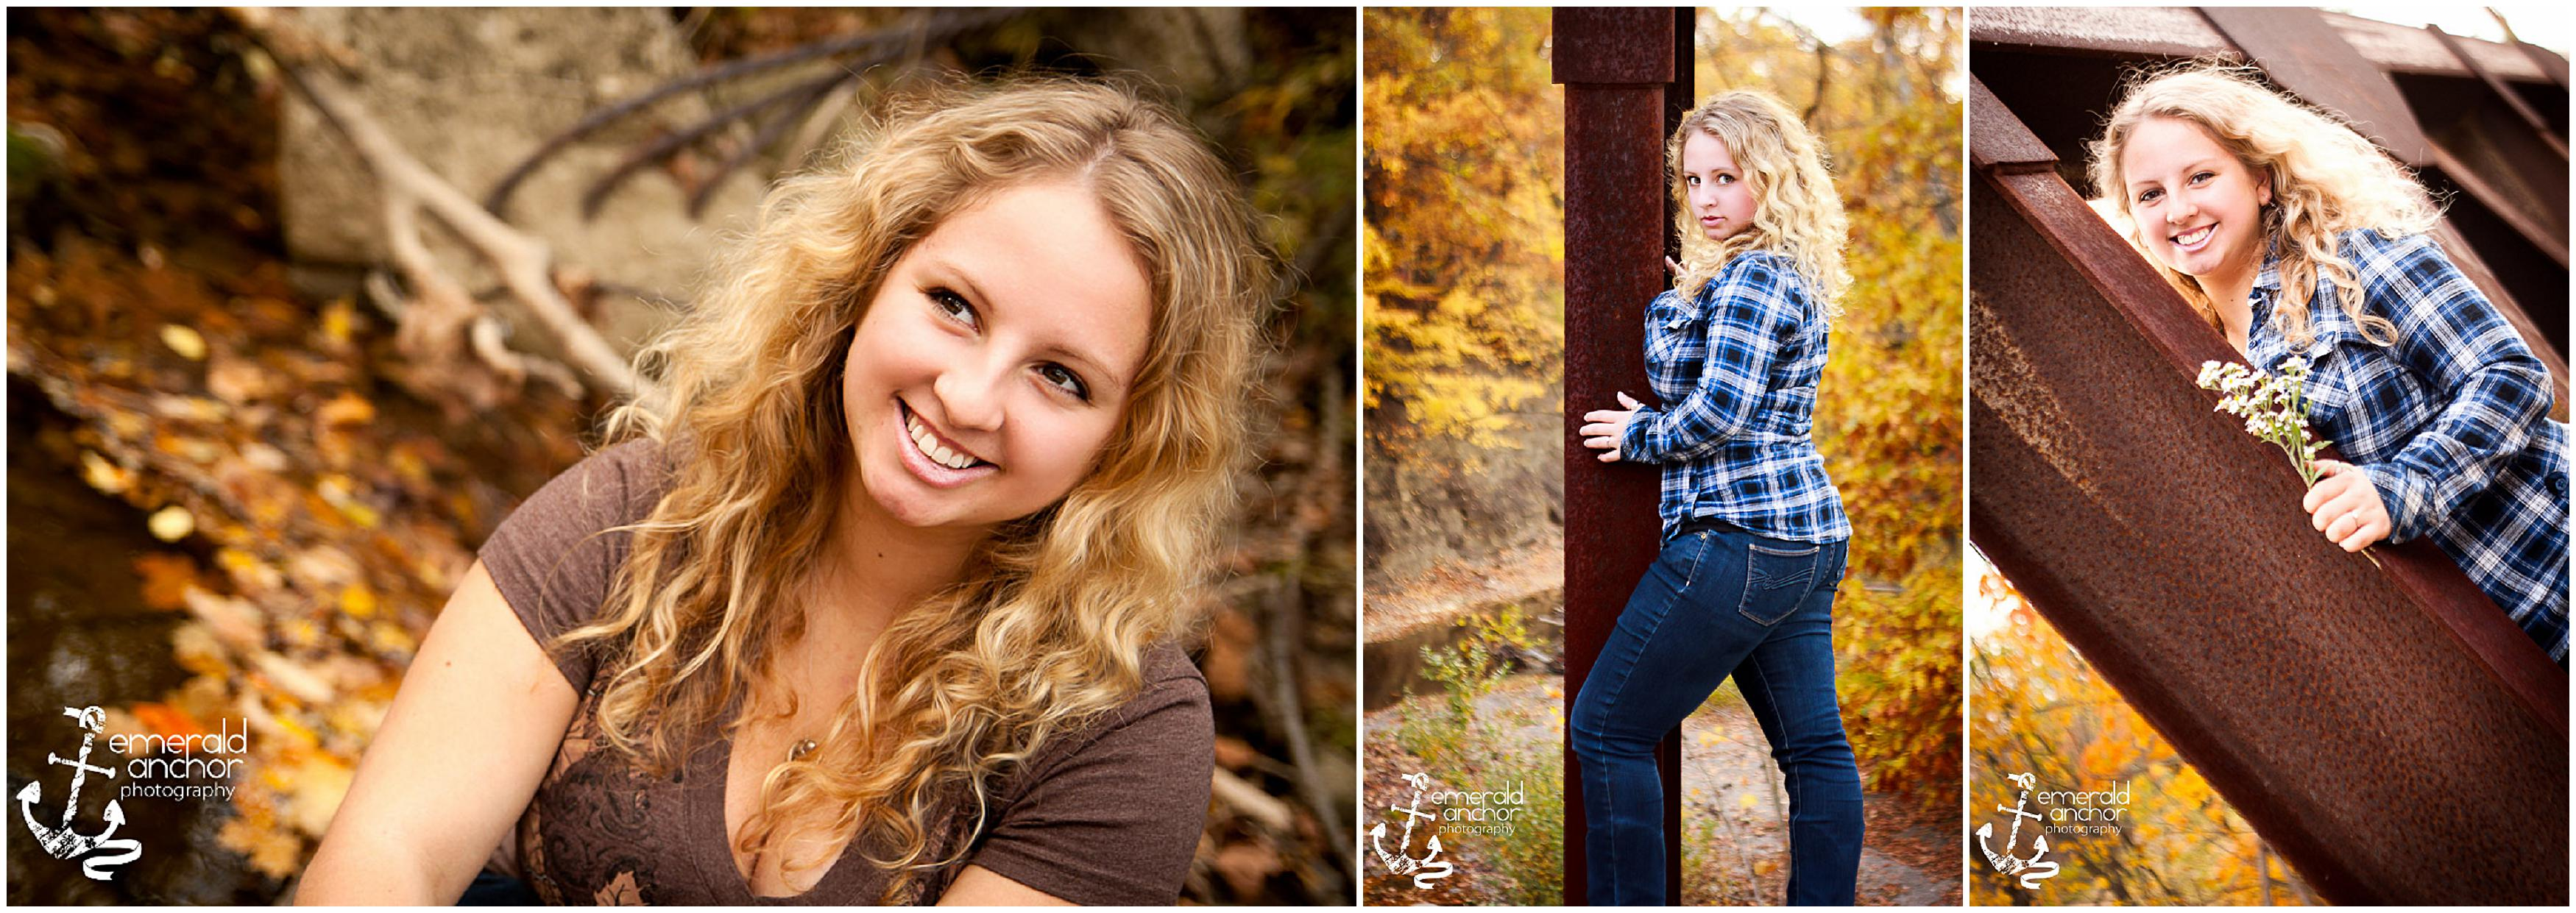 Emerald Anchor Photography senior Portraits (8)